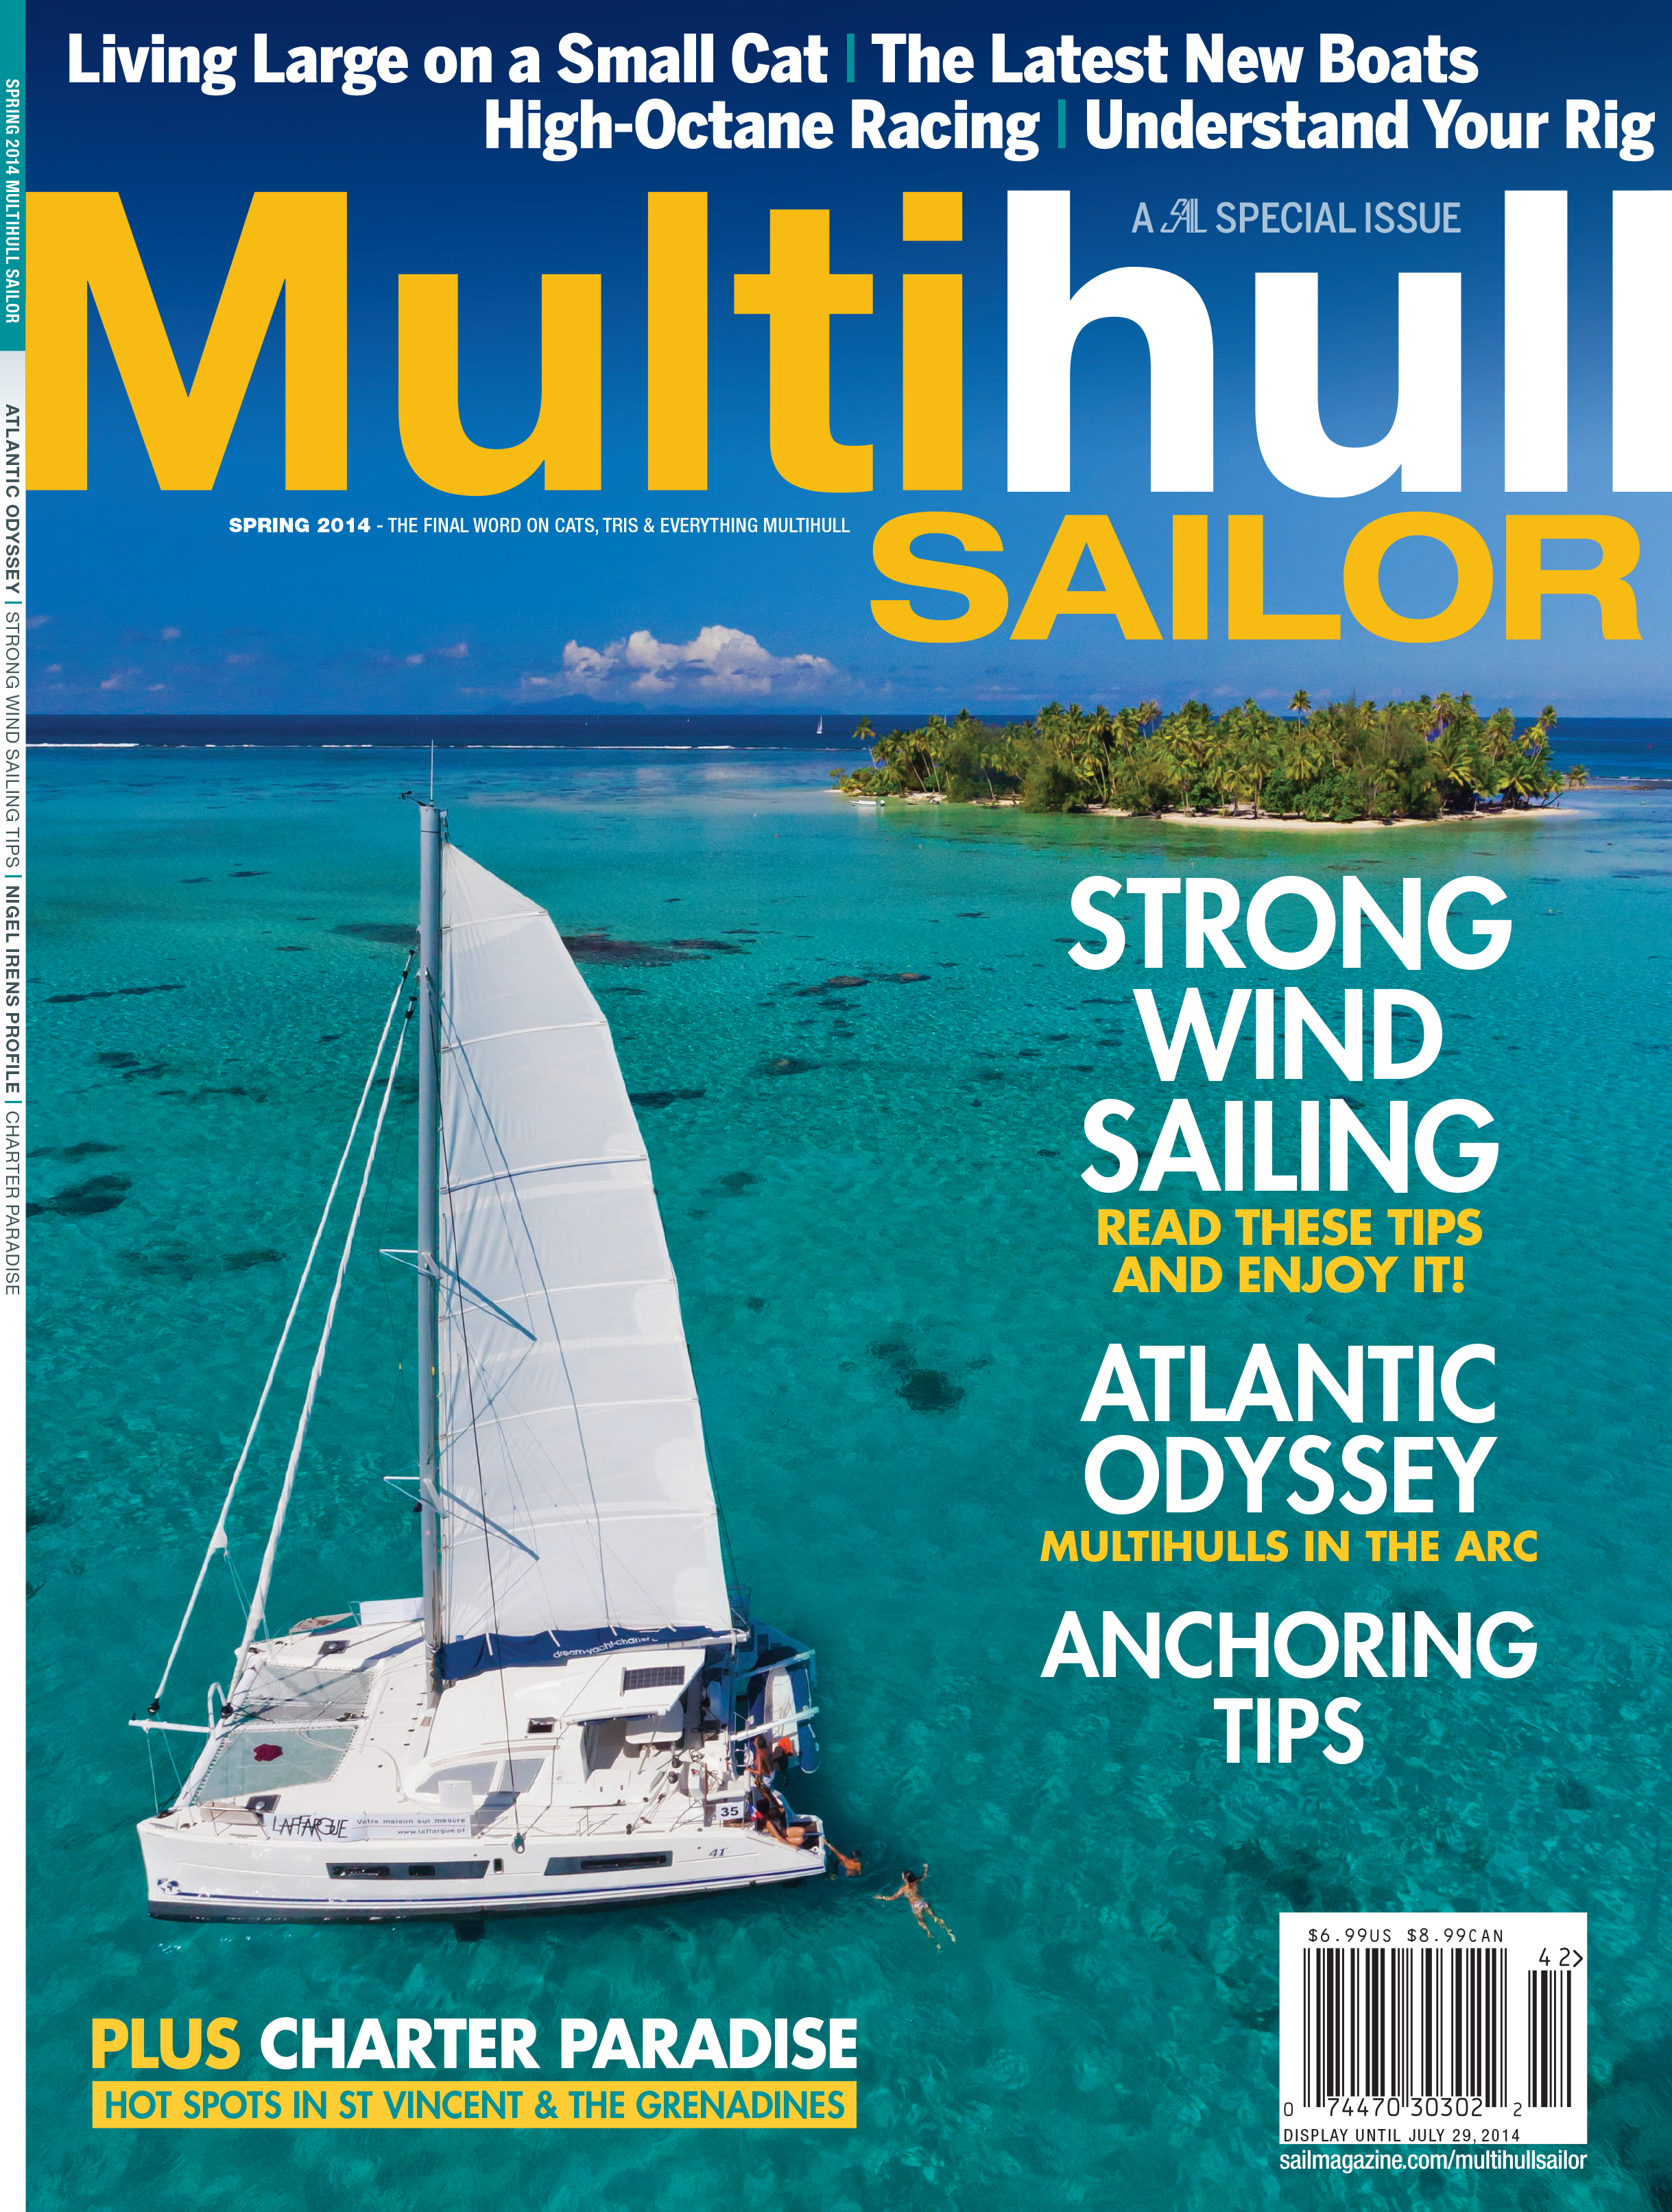 Multihull Sailor cover summer 2014